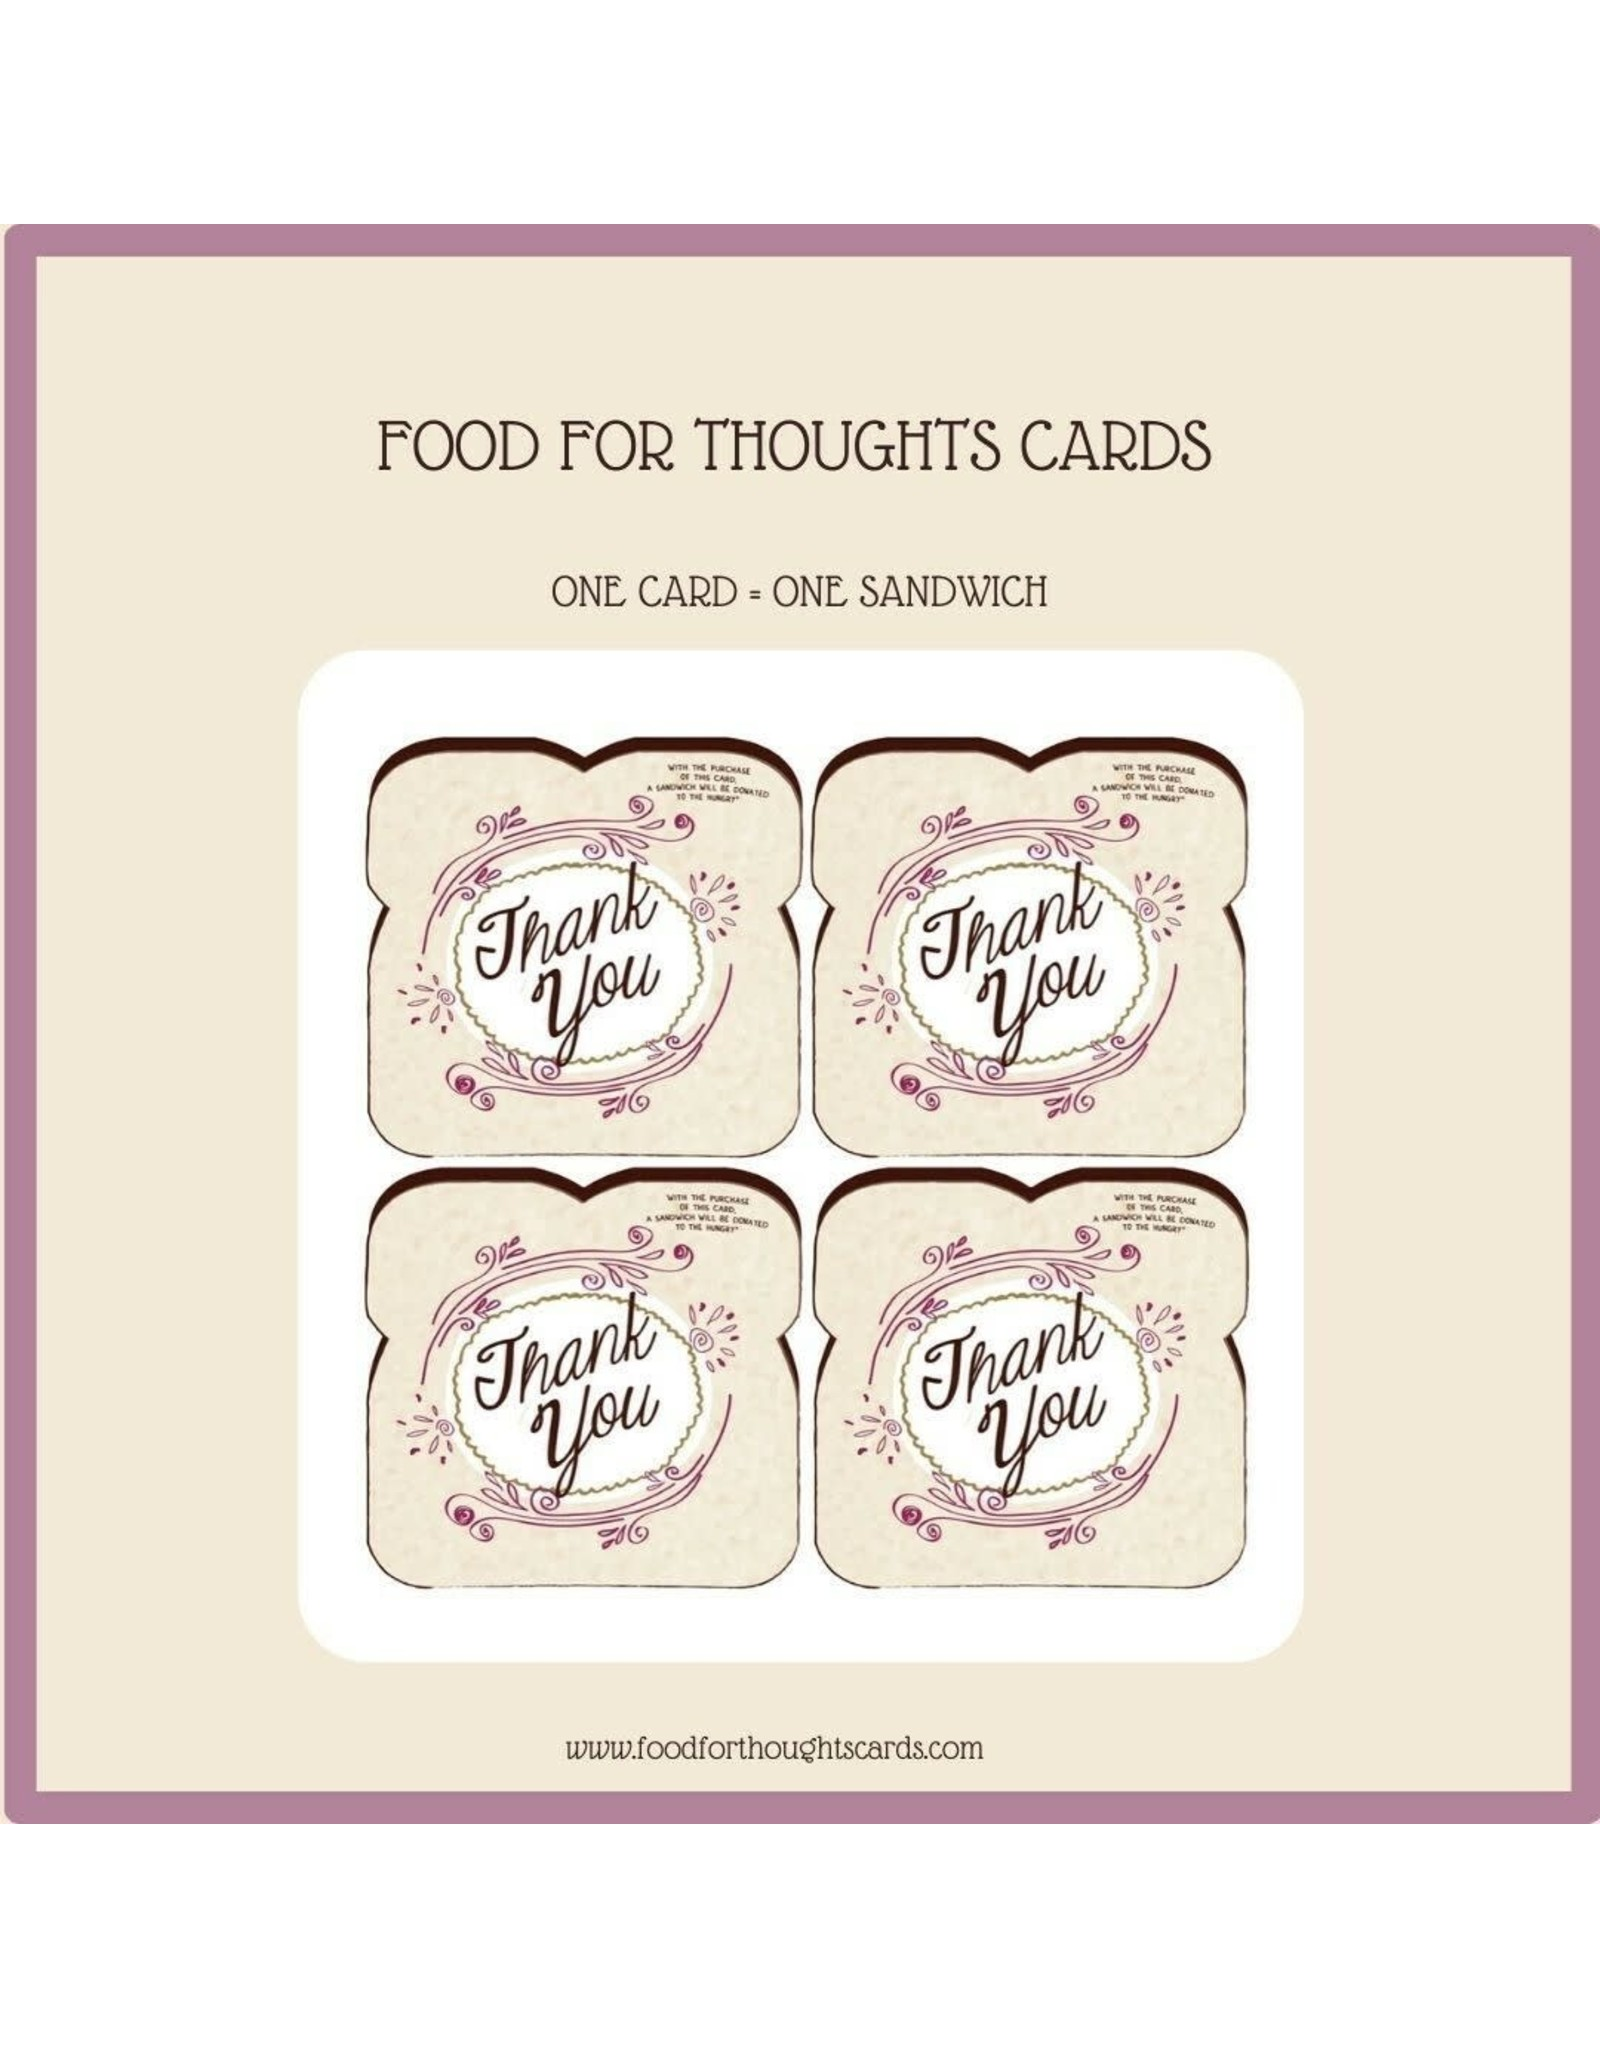 Thank You Cards 8-pack